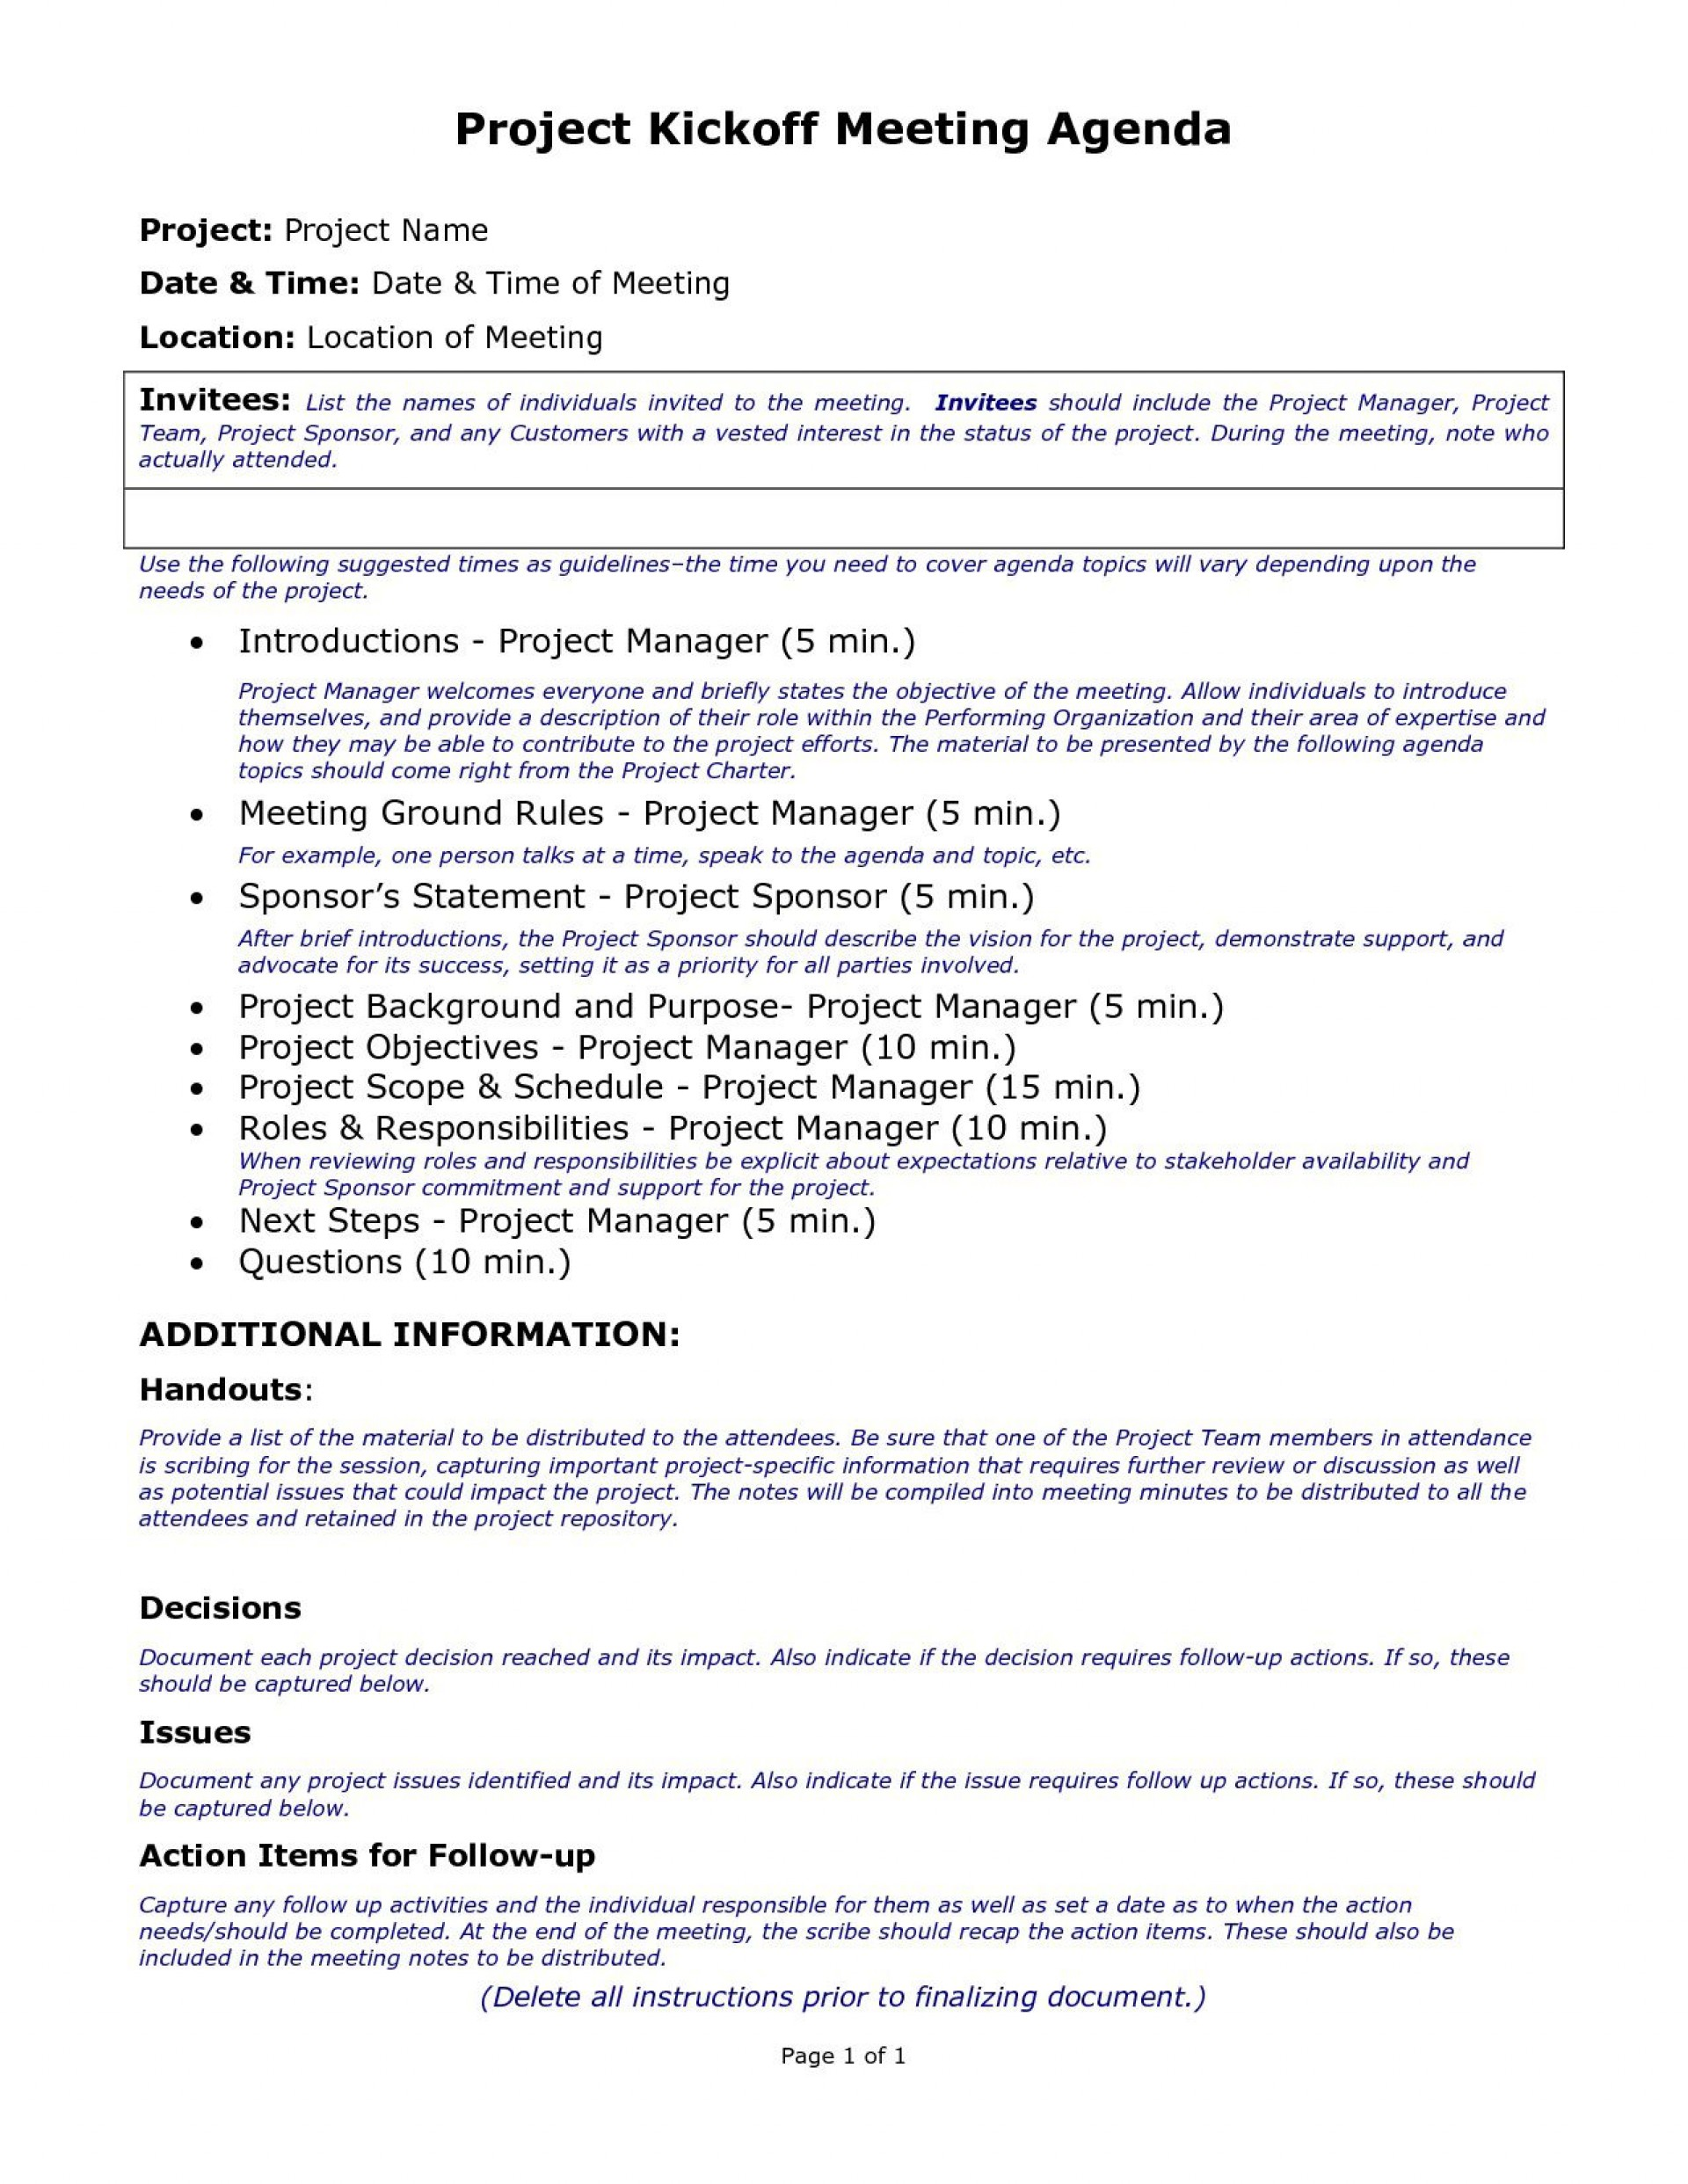 003 Marvelou Project Kickoff Meeting Template Highest Clarity  Management Agenda Construction Doc Email1920